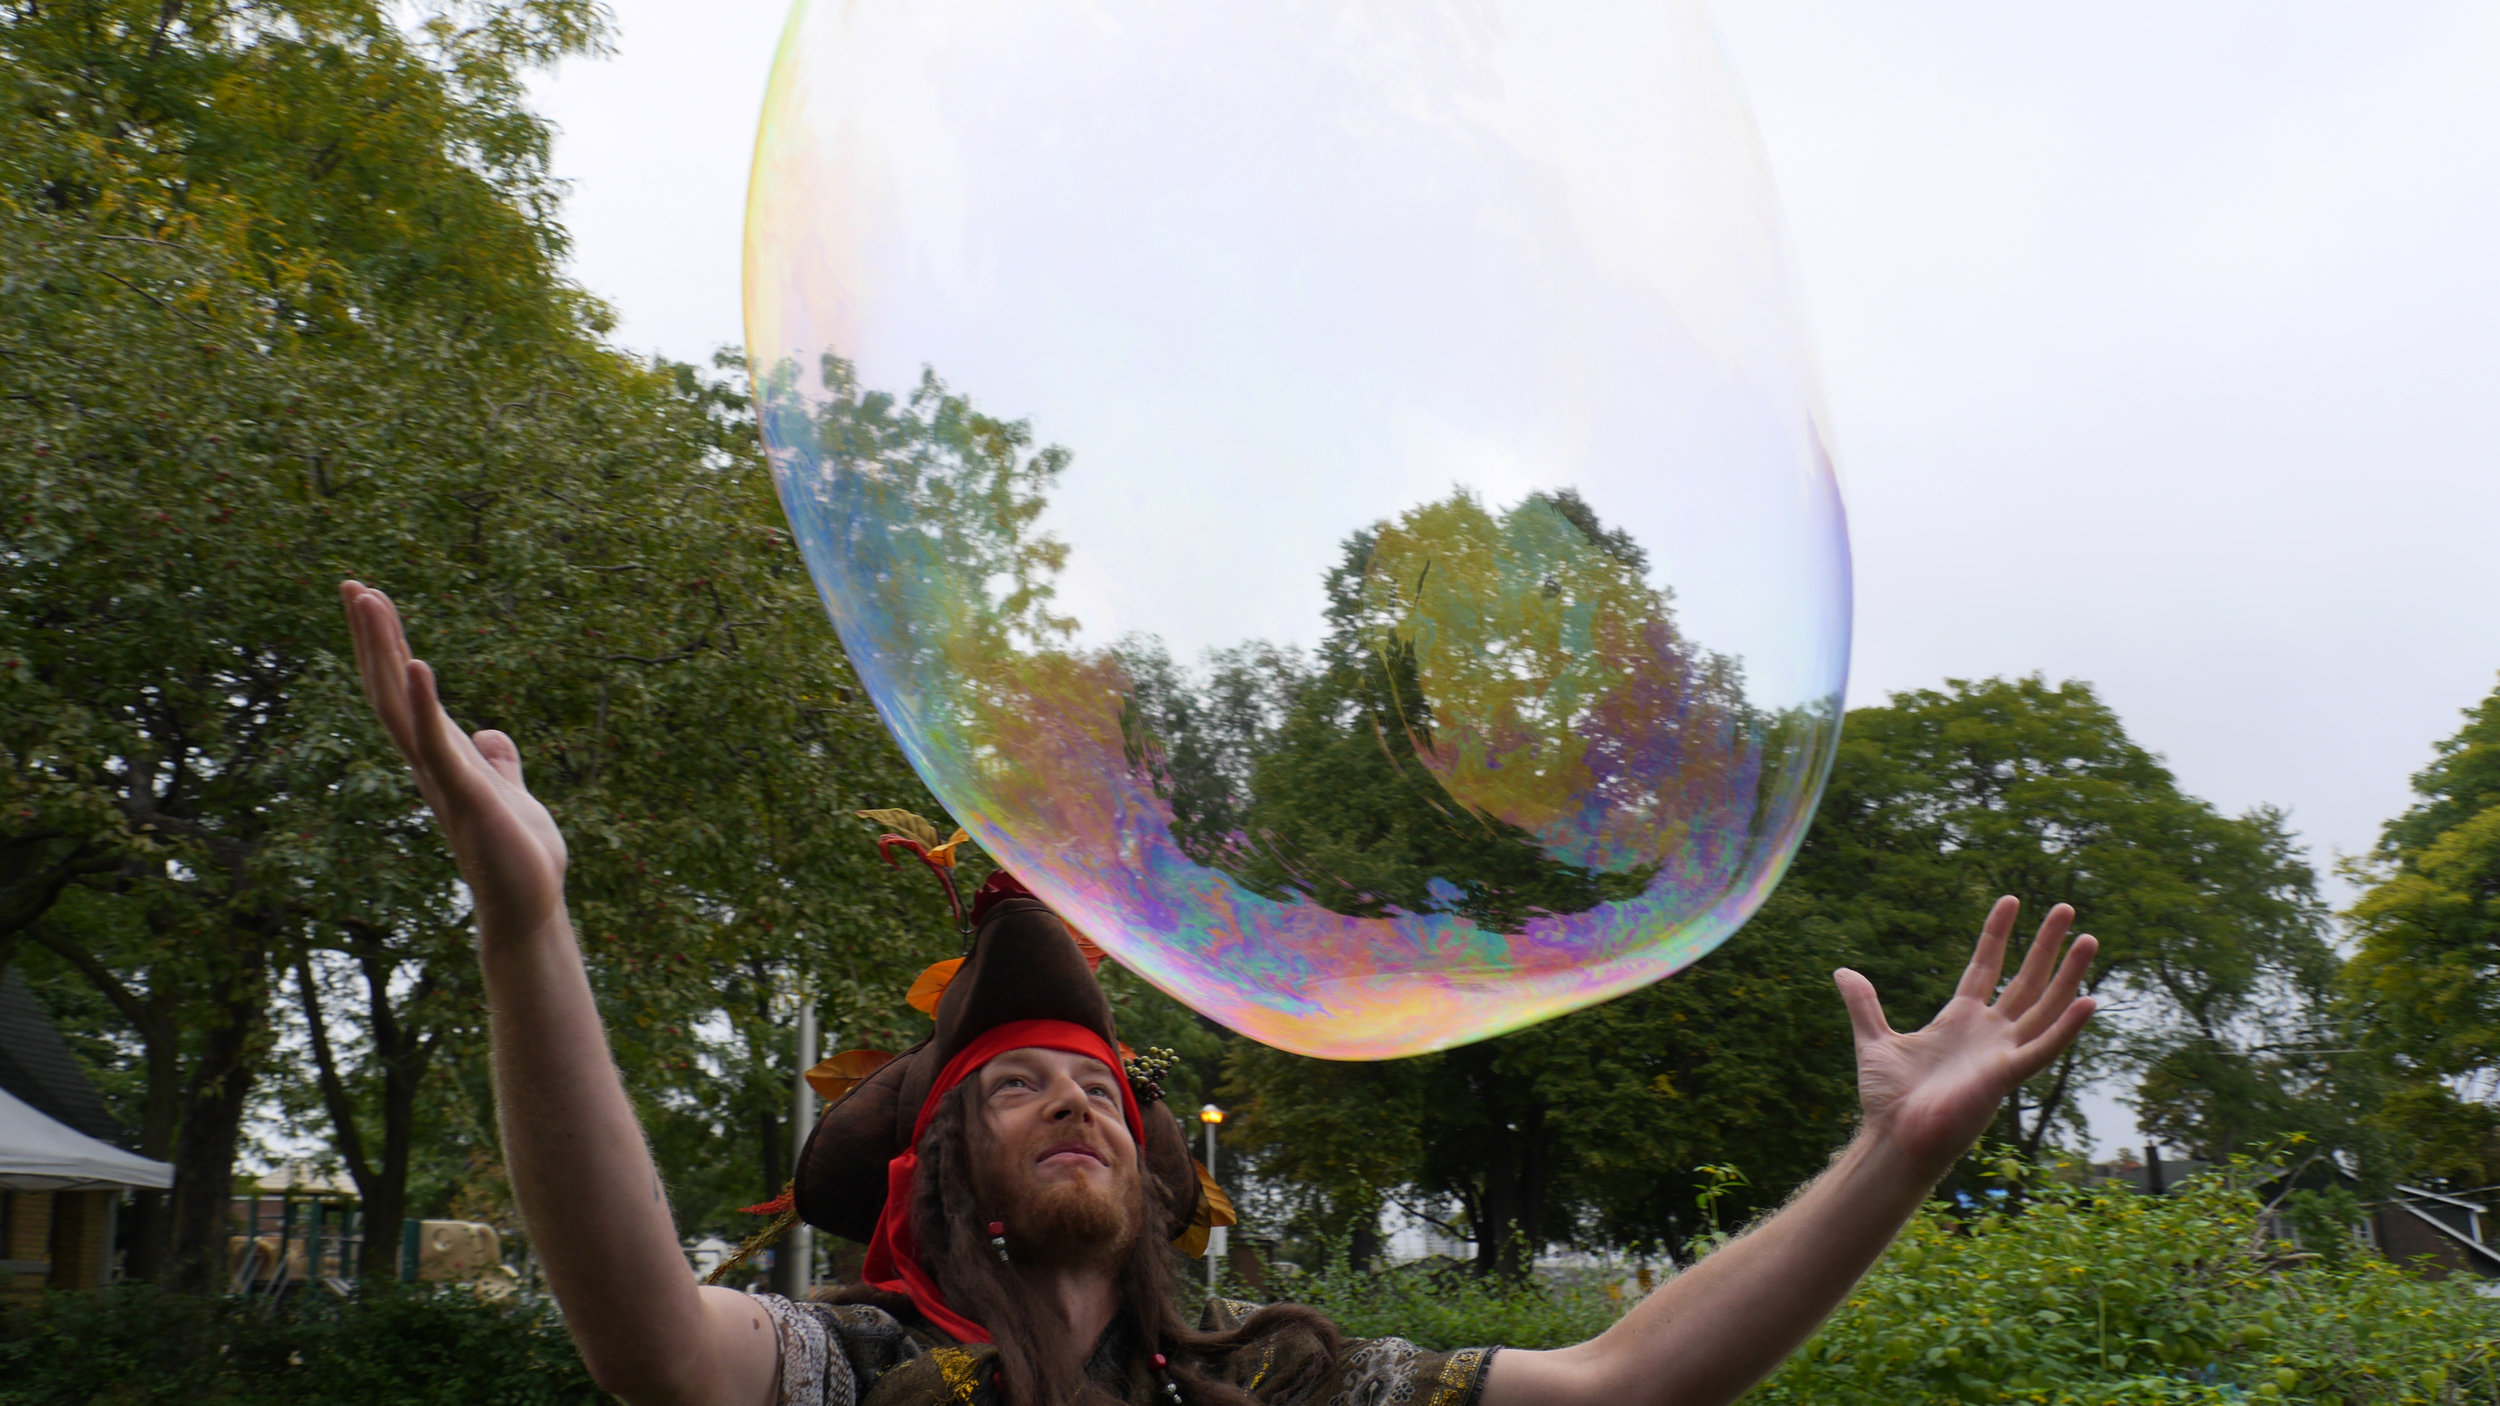 Pirate_Bubble_Large.jpg